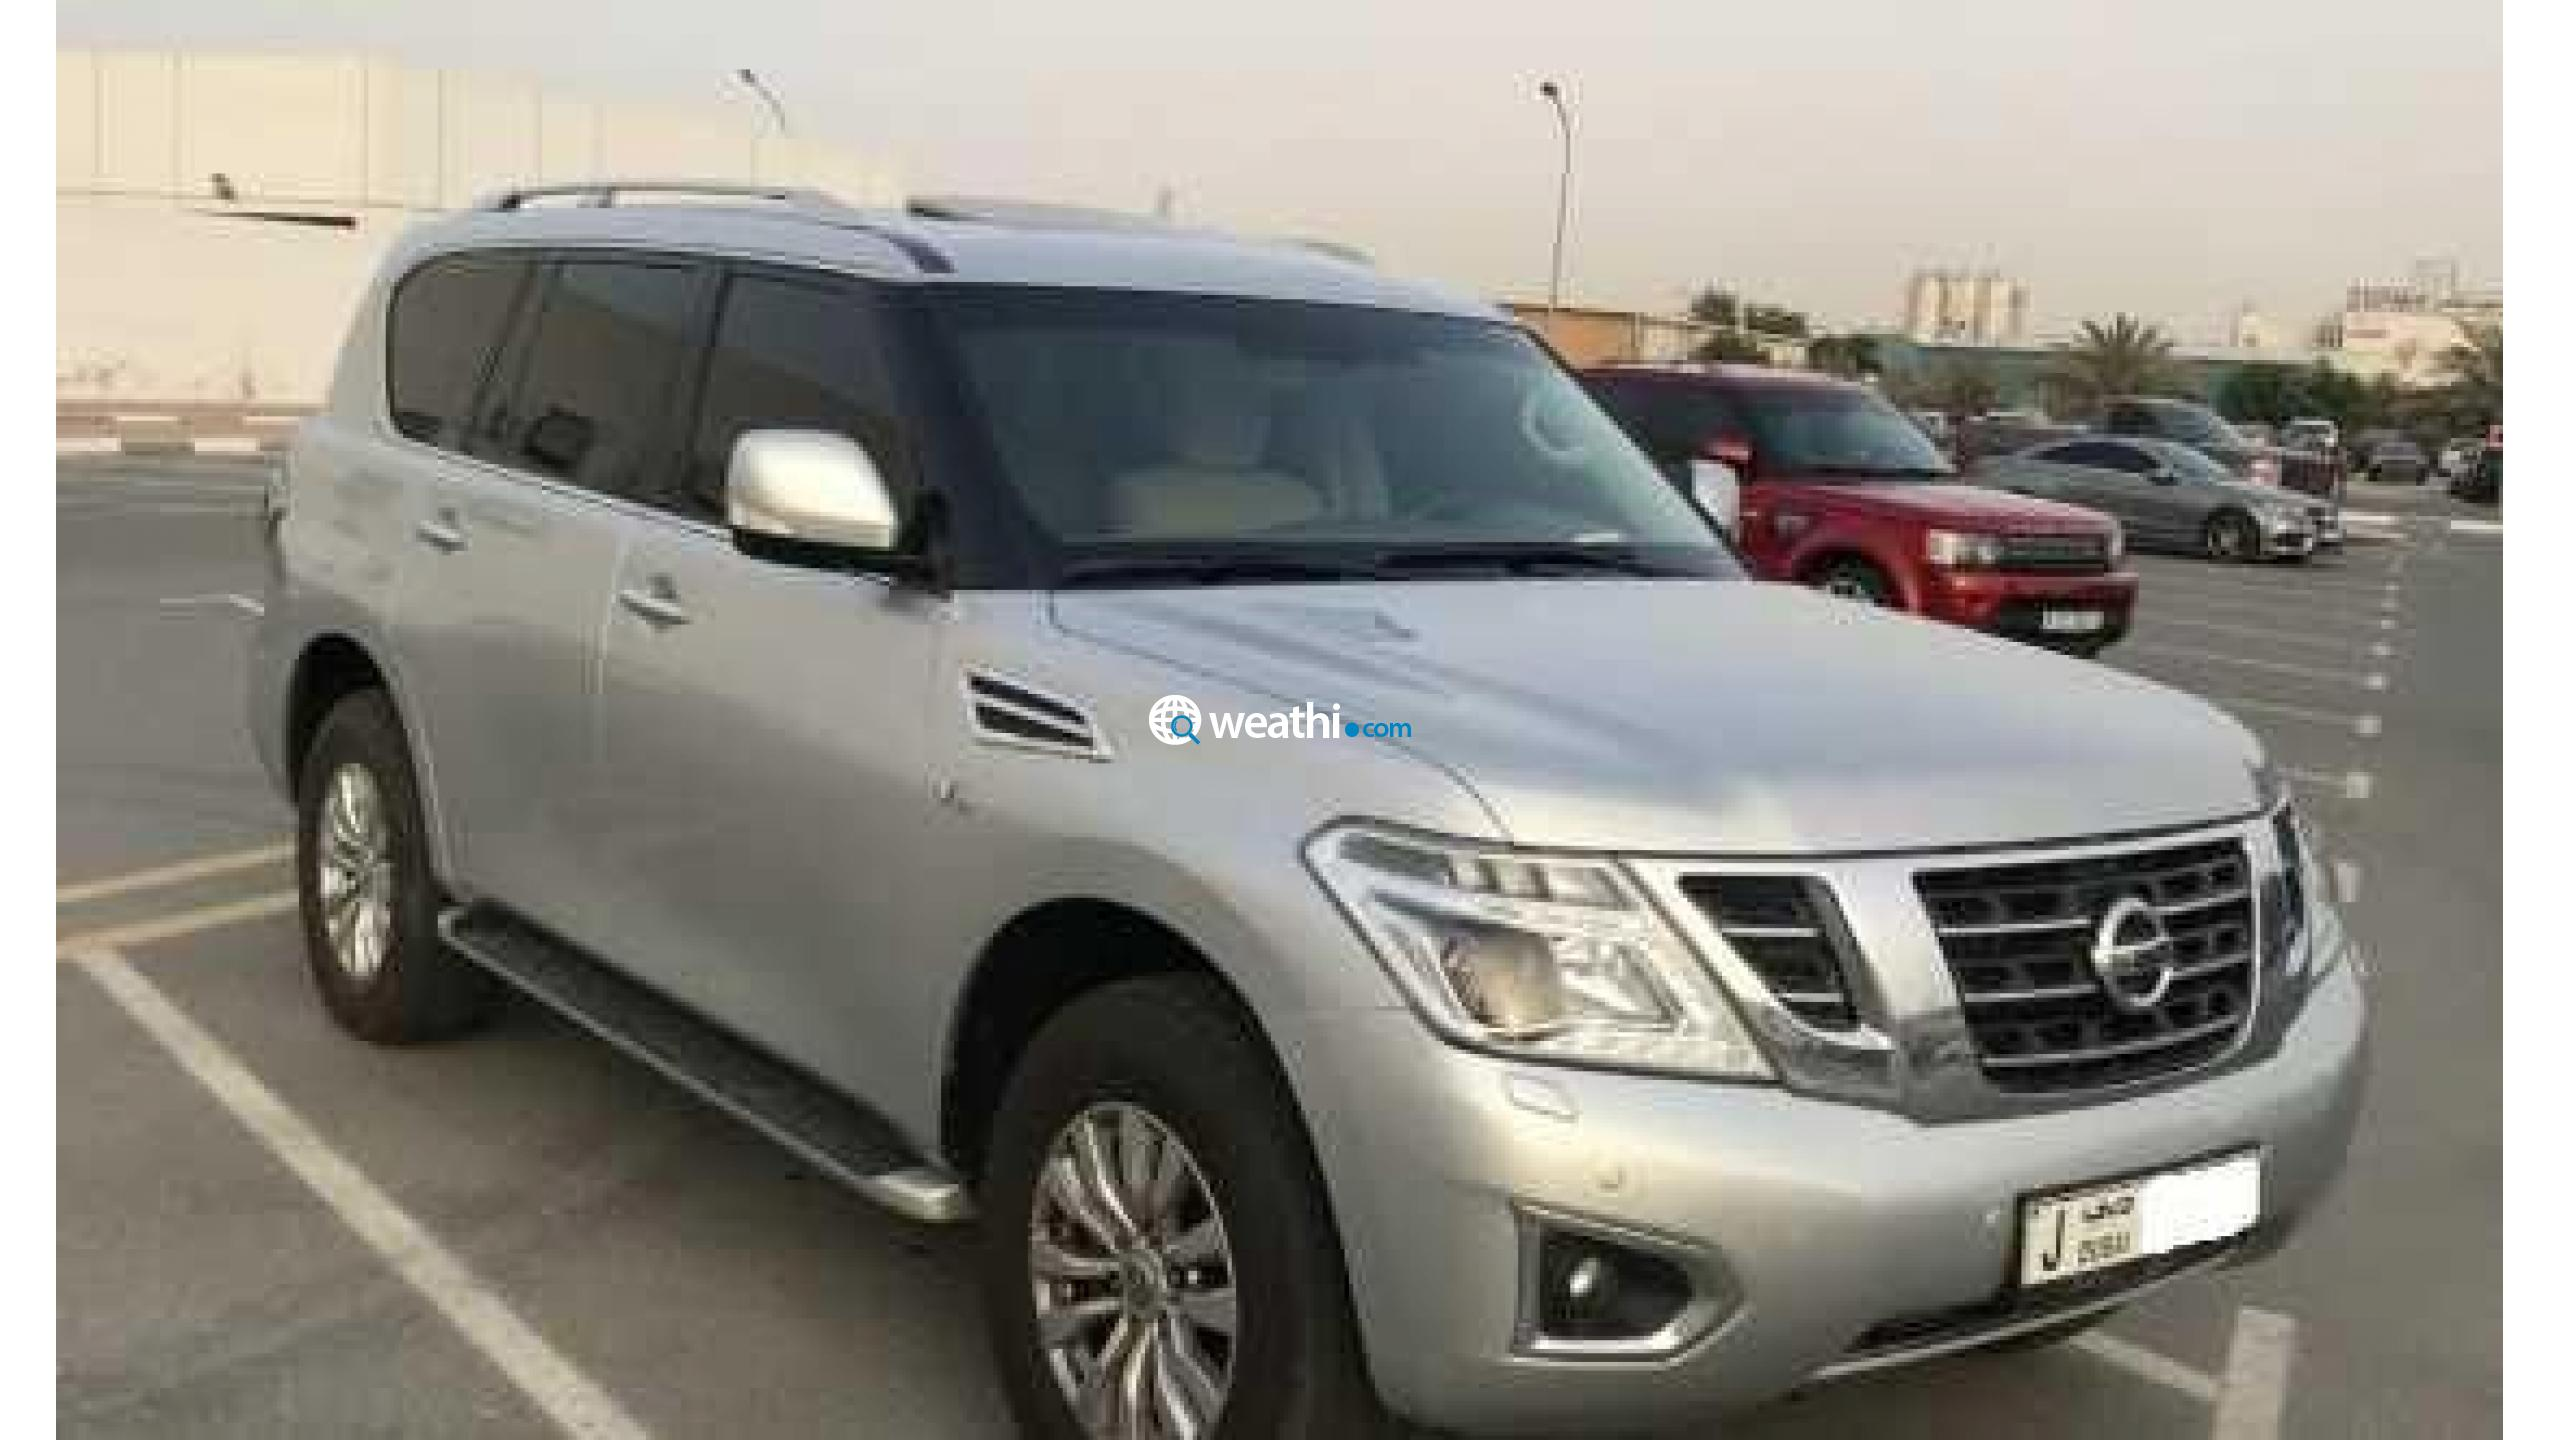 emi 2 160 monthly 0 down payment patrol gcc full option for sale in dubai